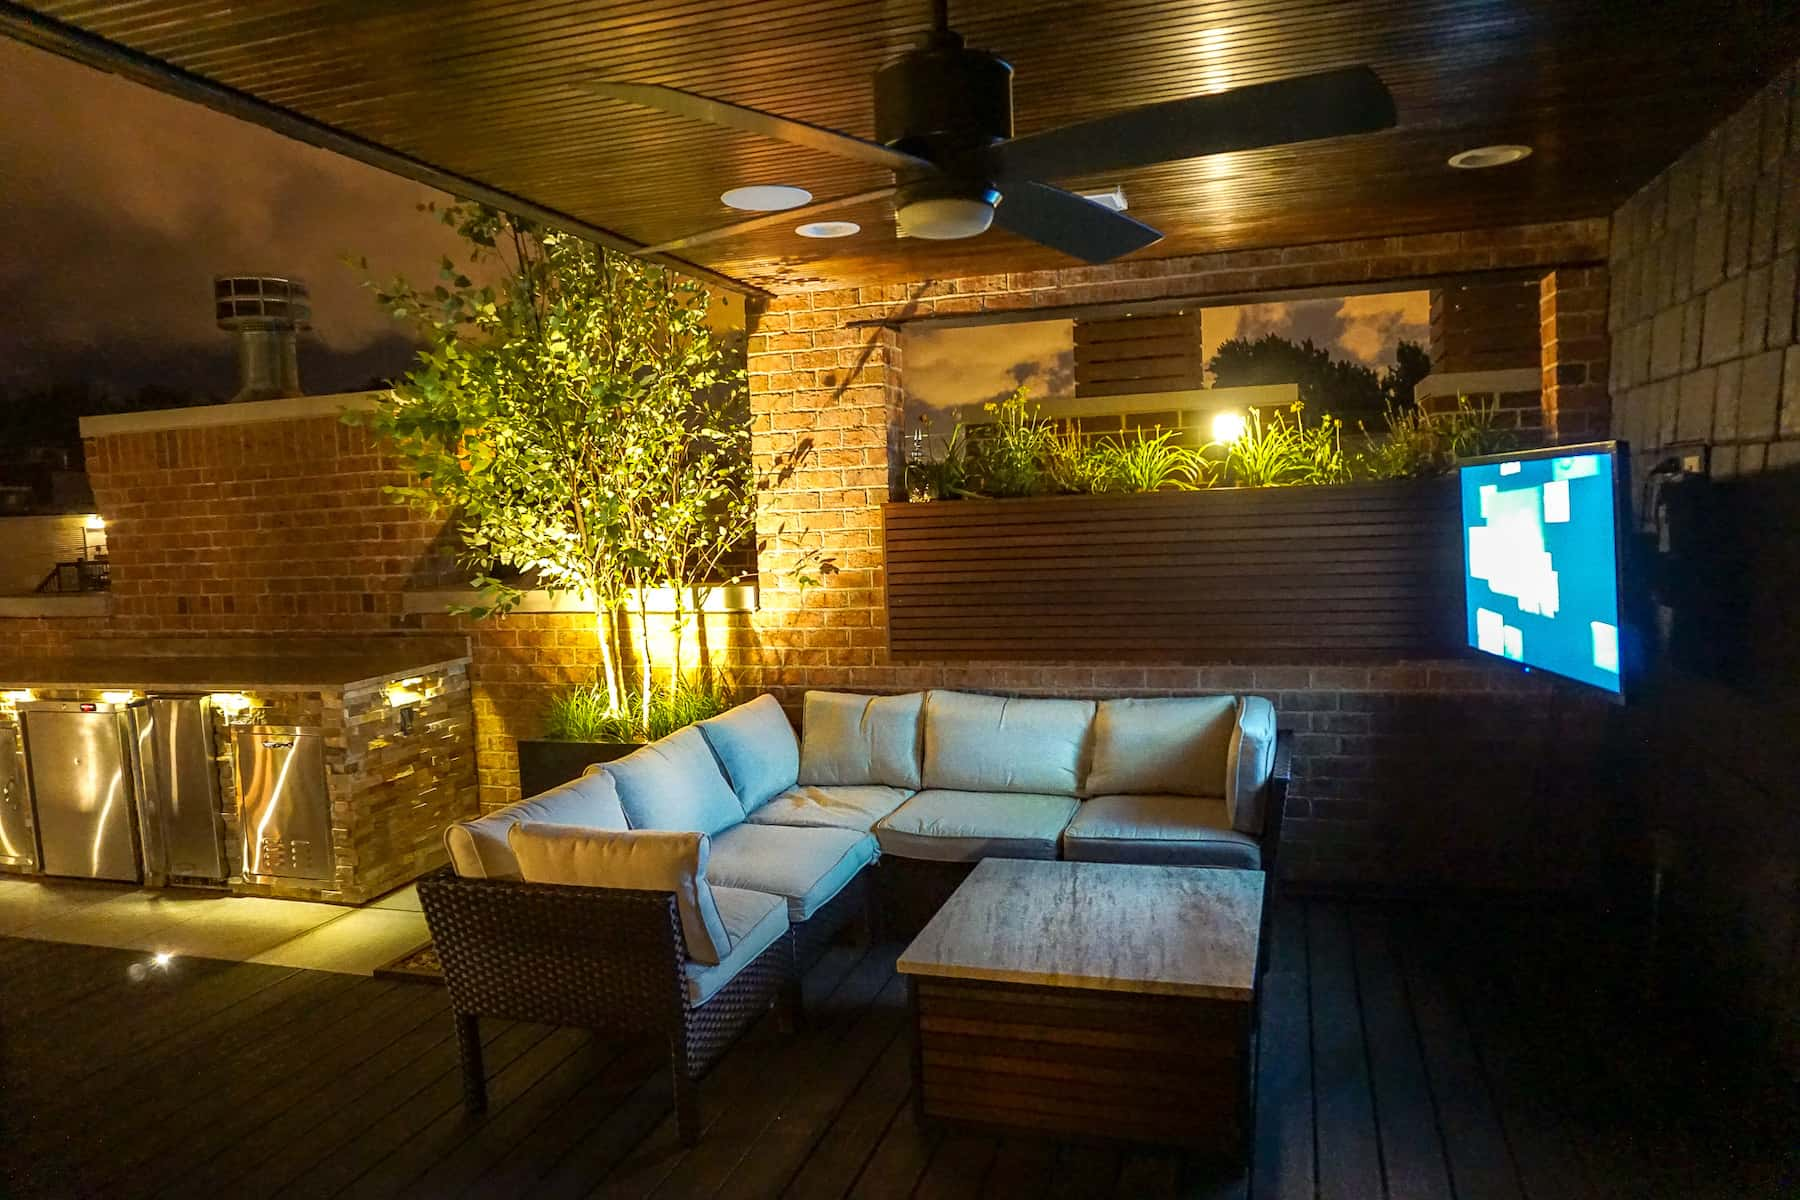 Outdoor Furniture with TV